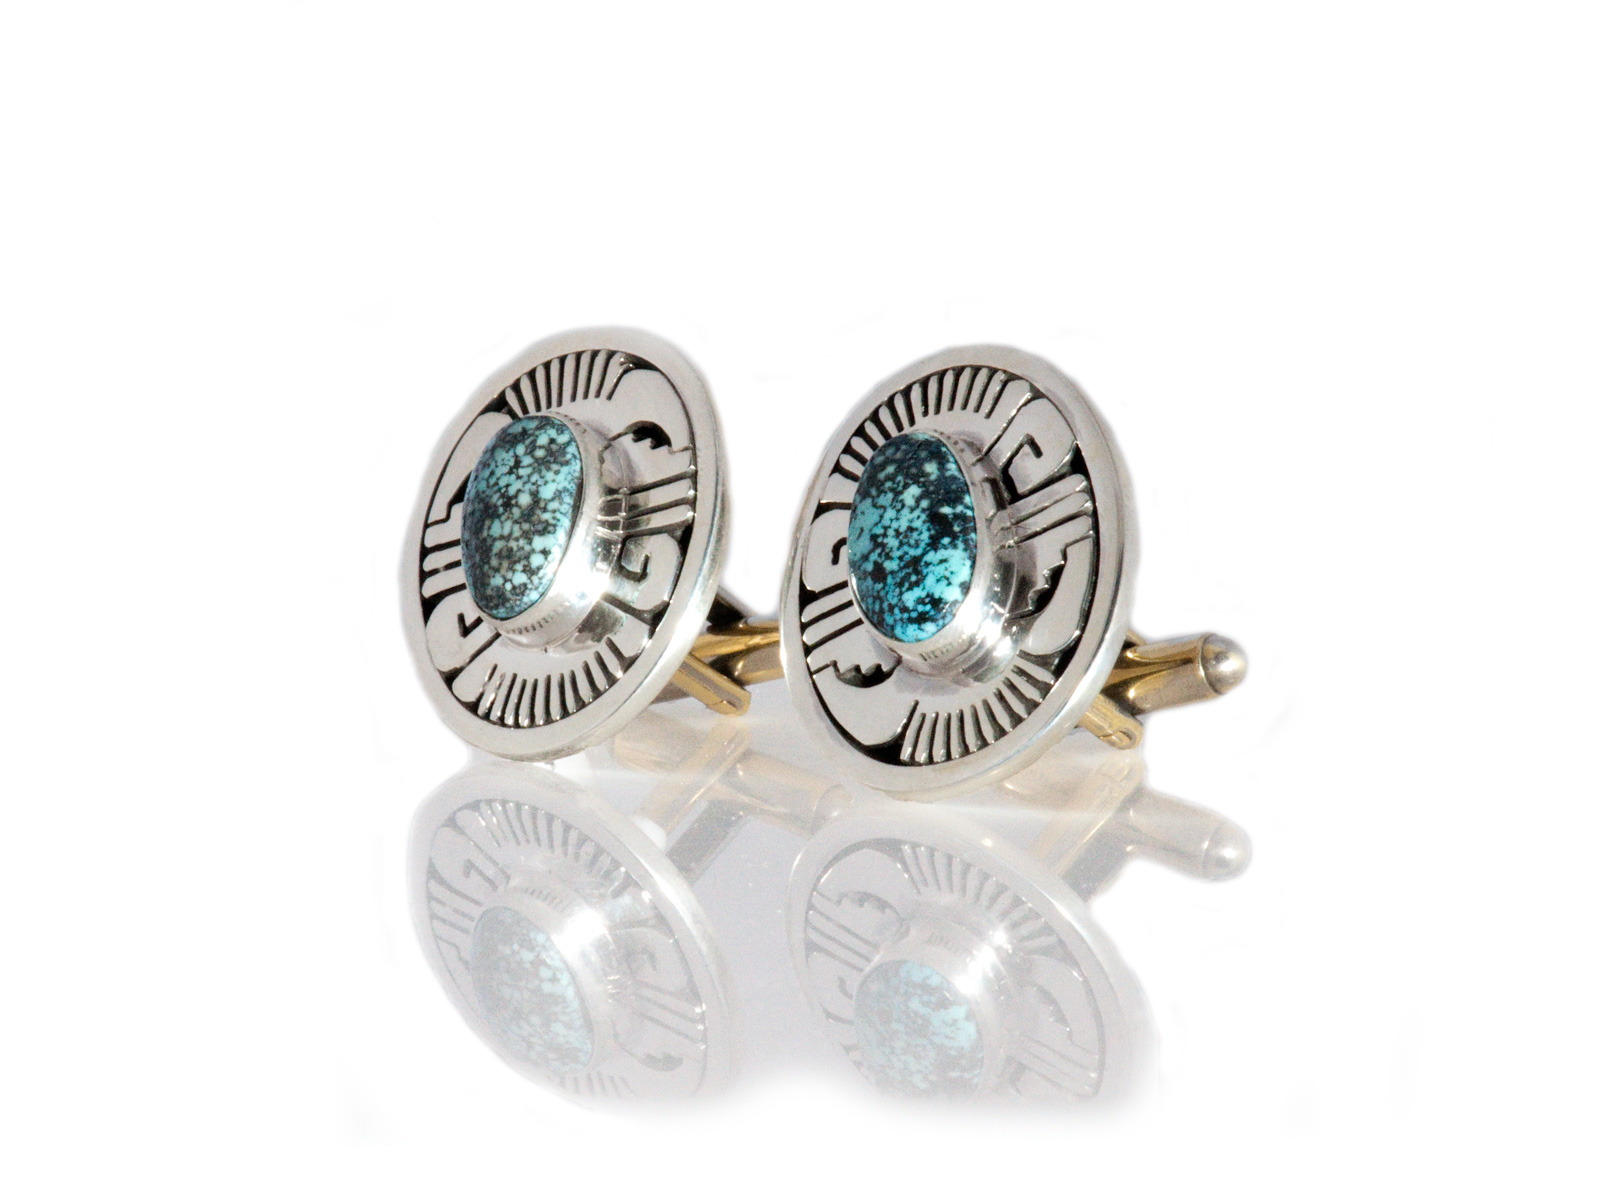 Oval Turquoise Cufflinks